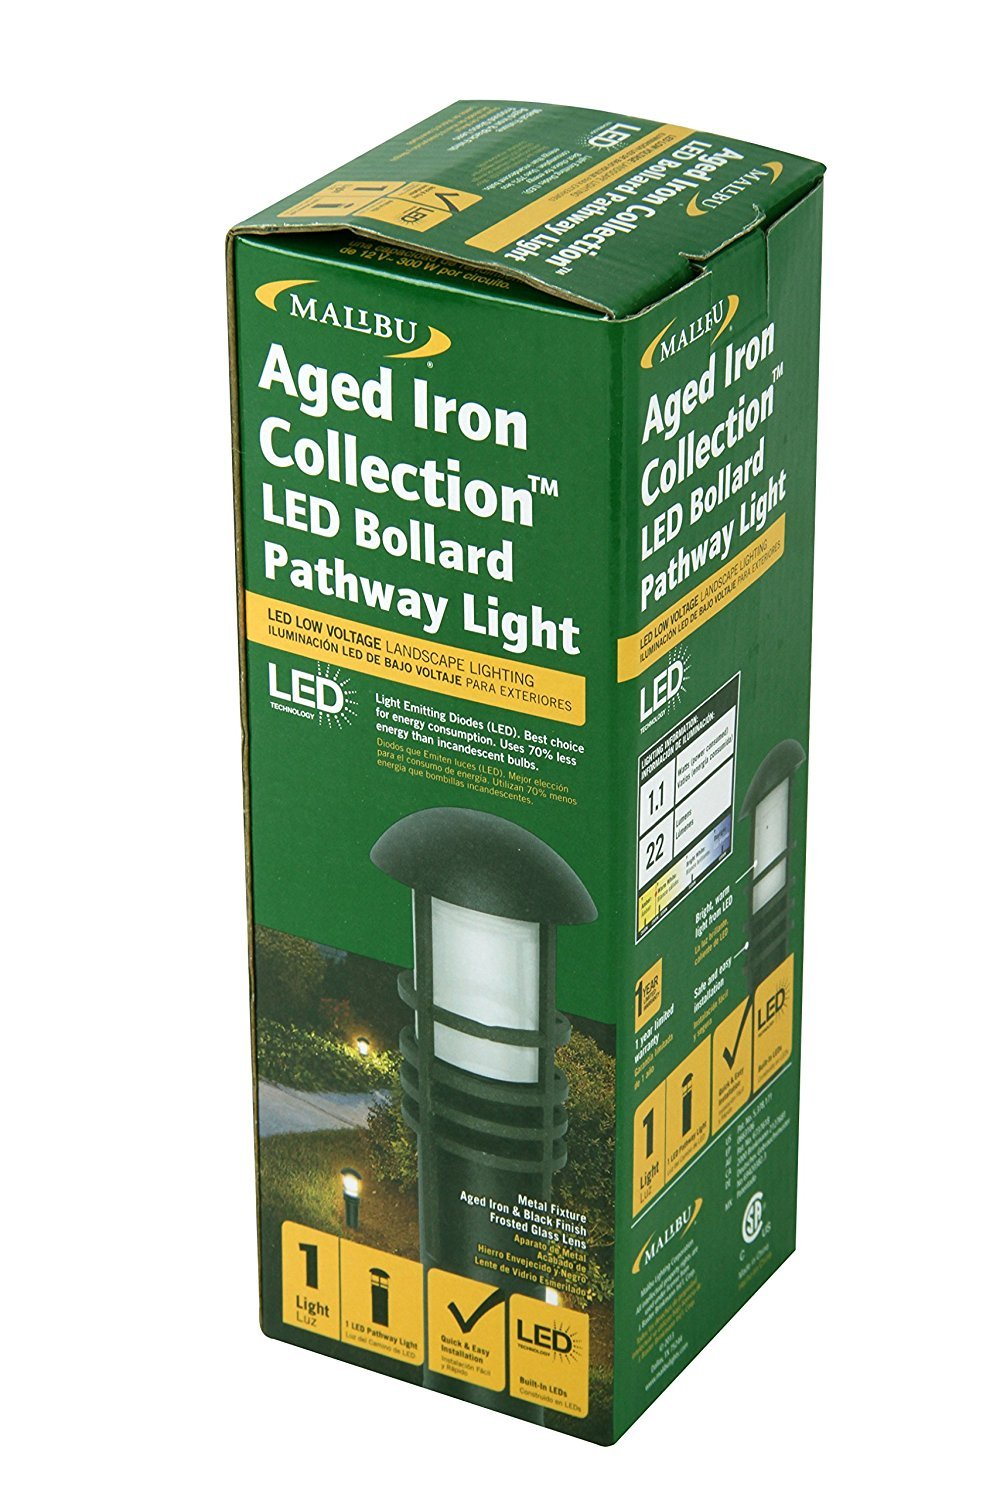 malibu aged iron collection led bollard pathway light led low